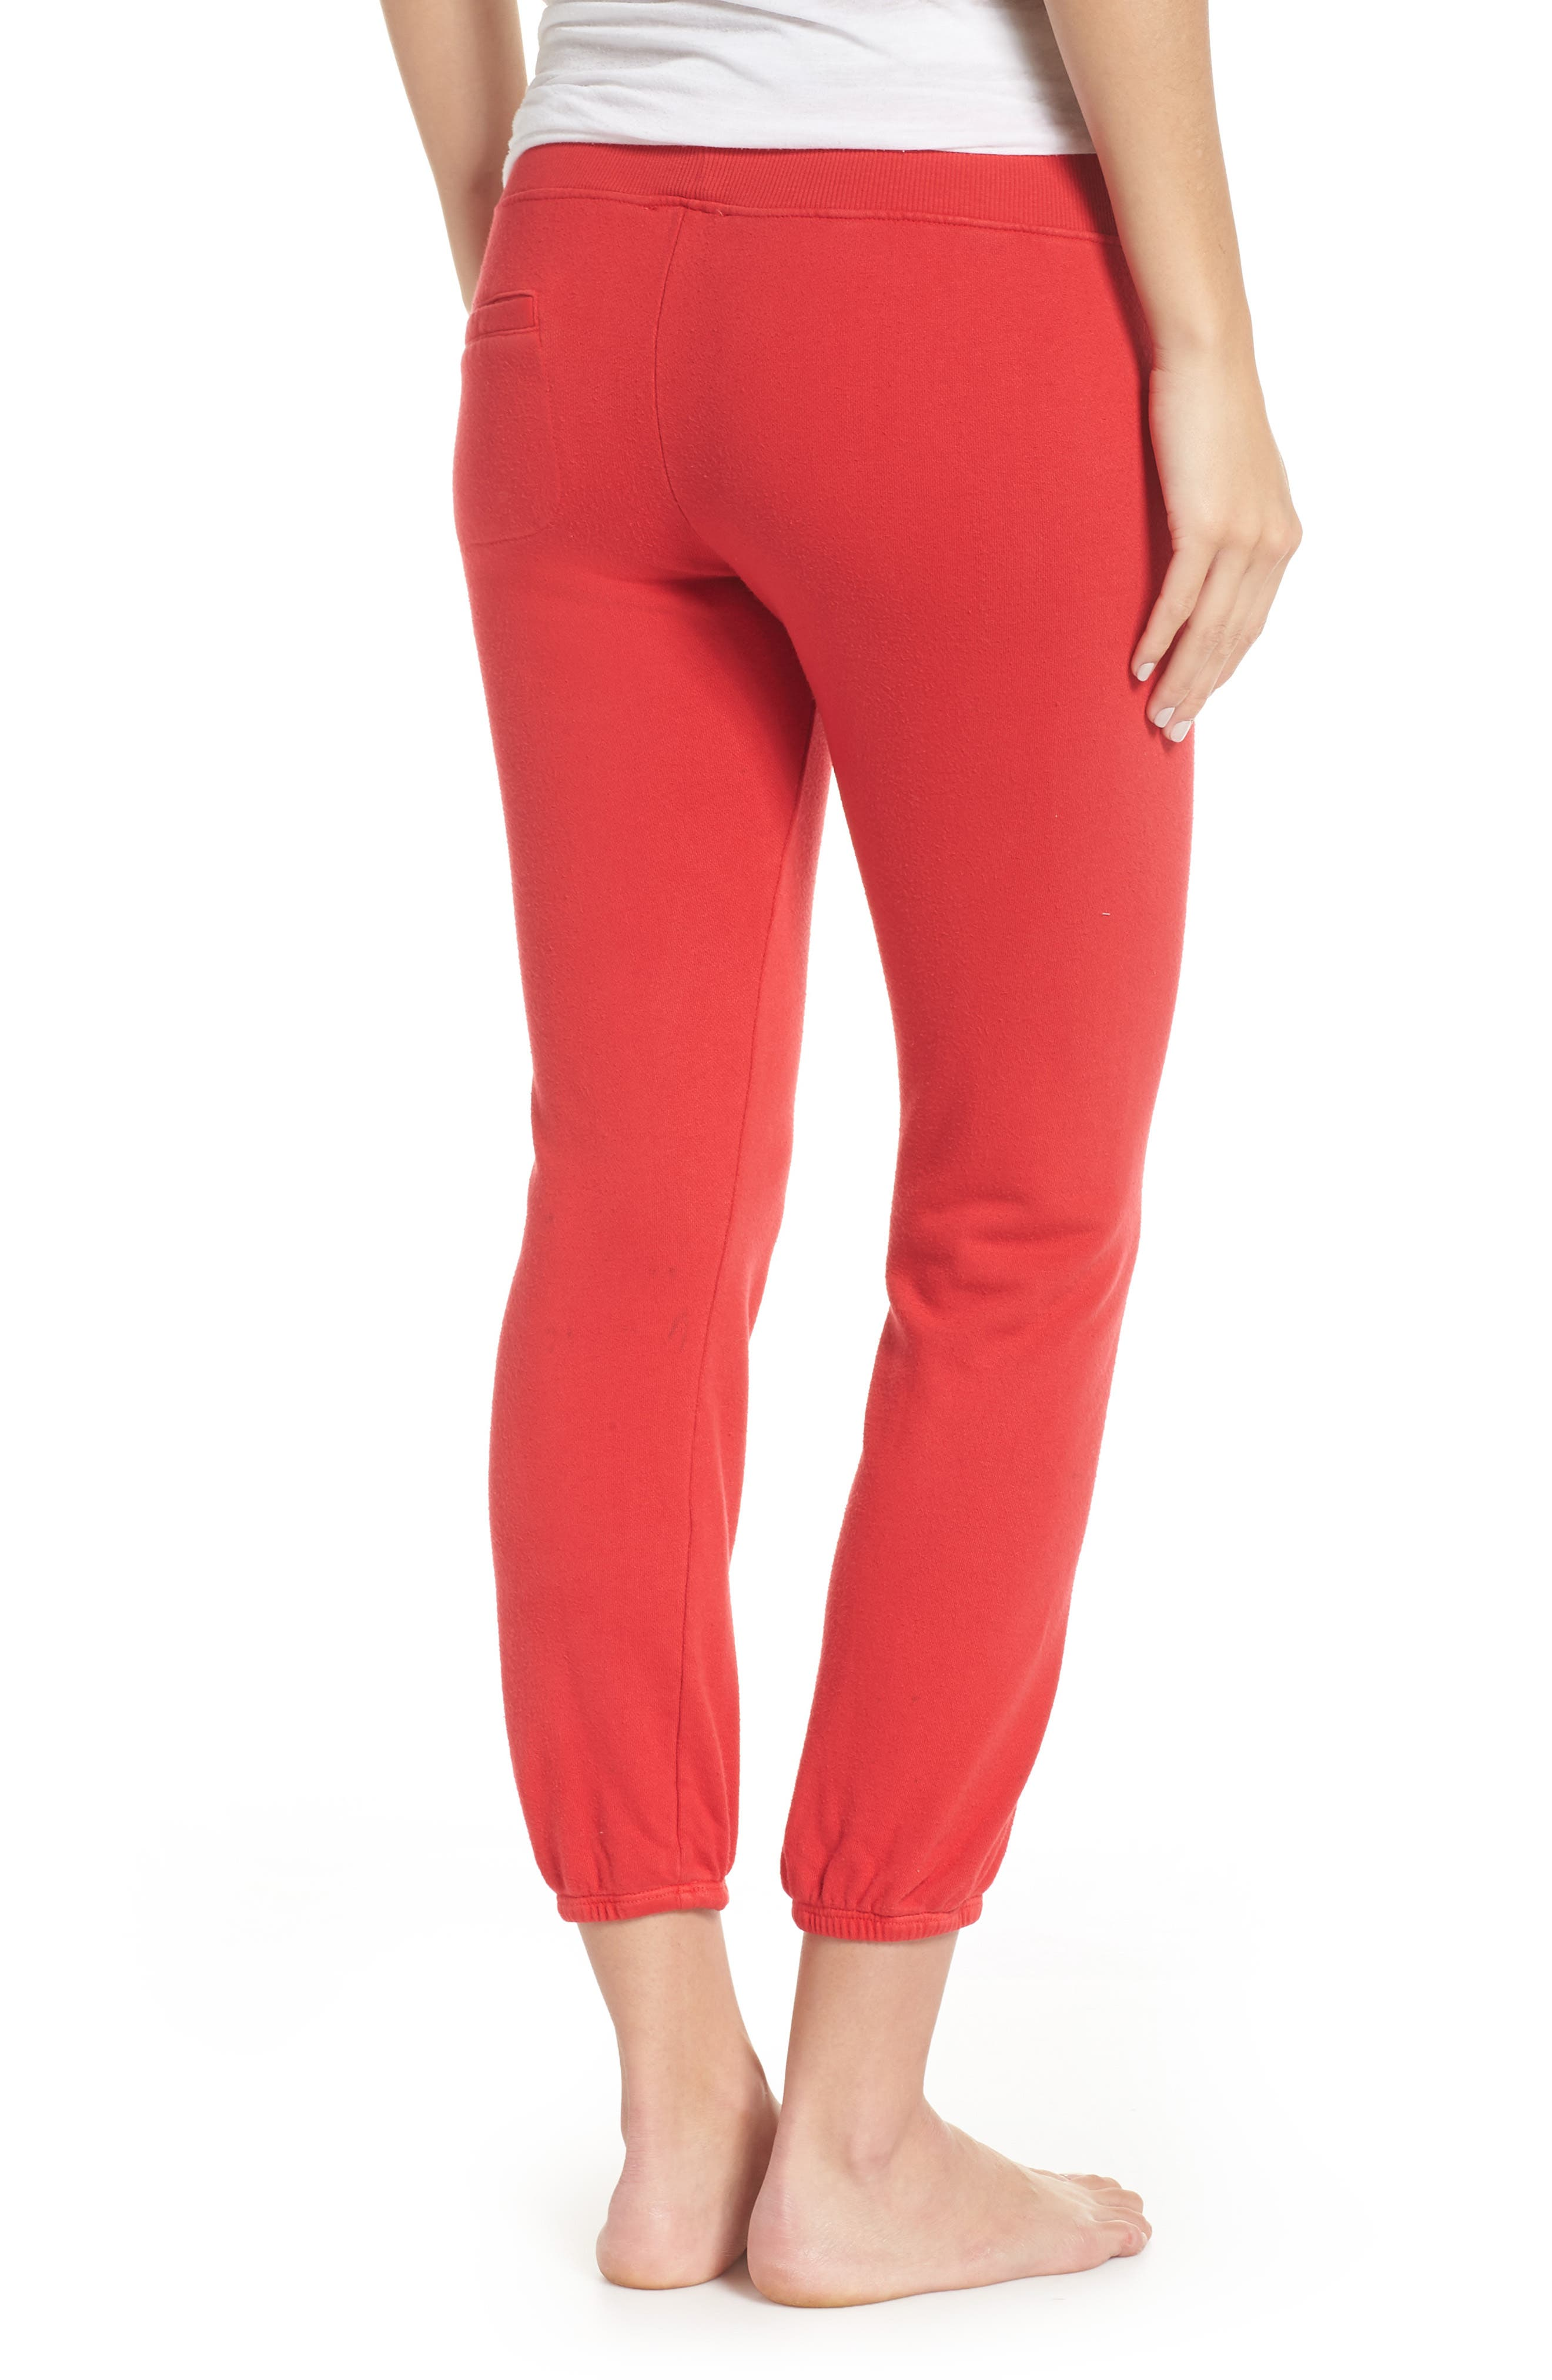 Loung Sweatpants,                             Alternate thumbnail 2, color,                             Poppy